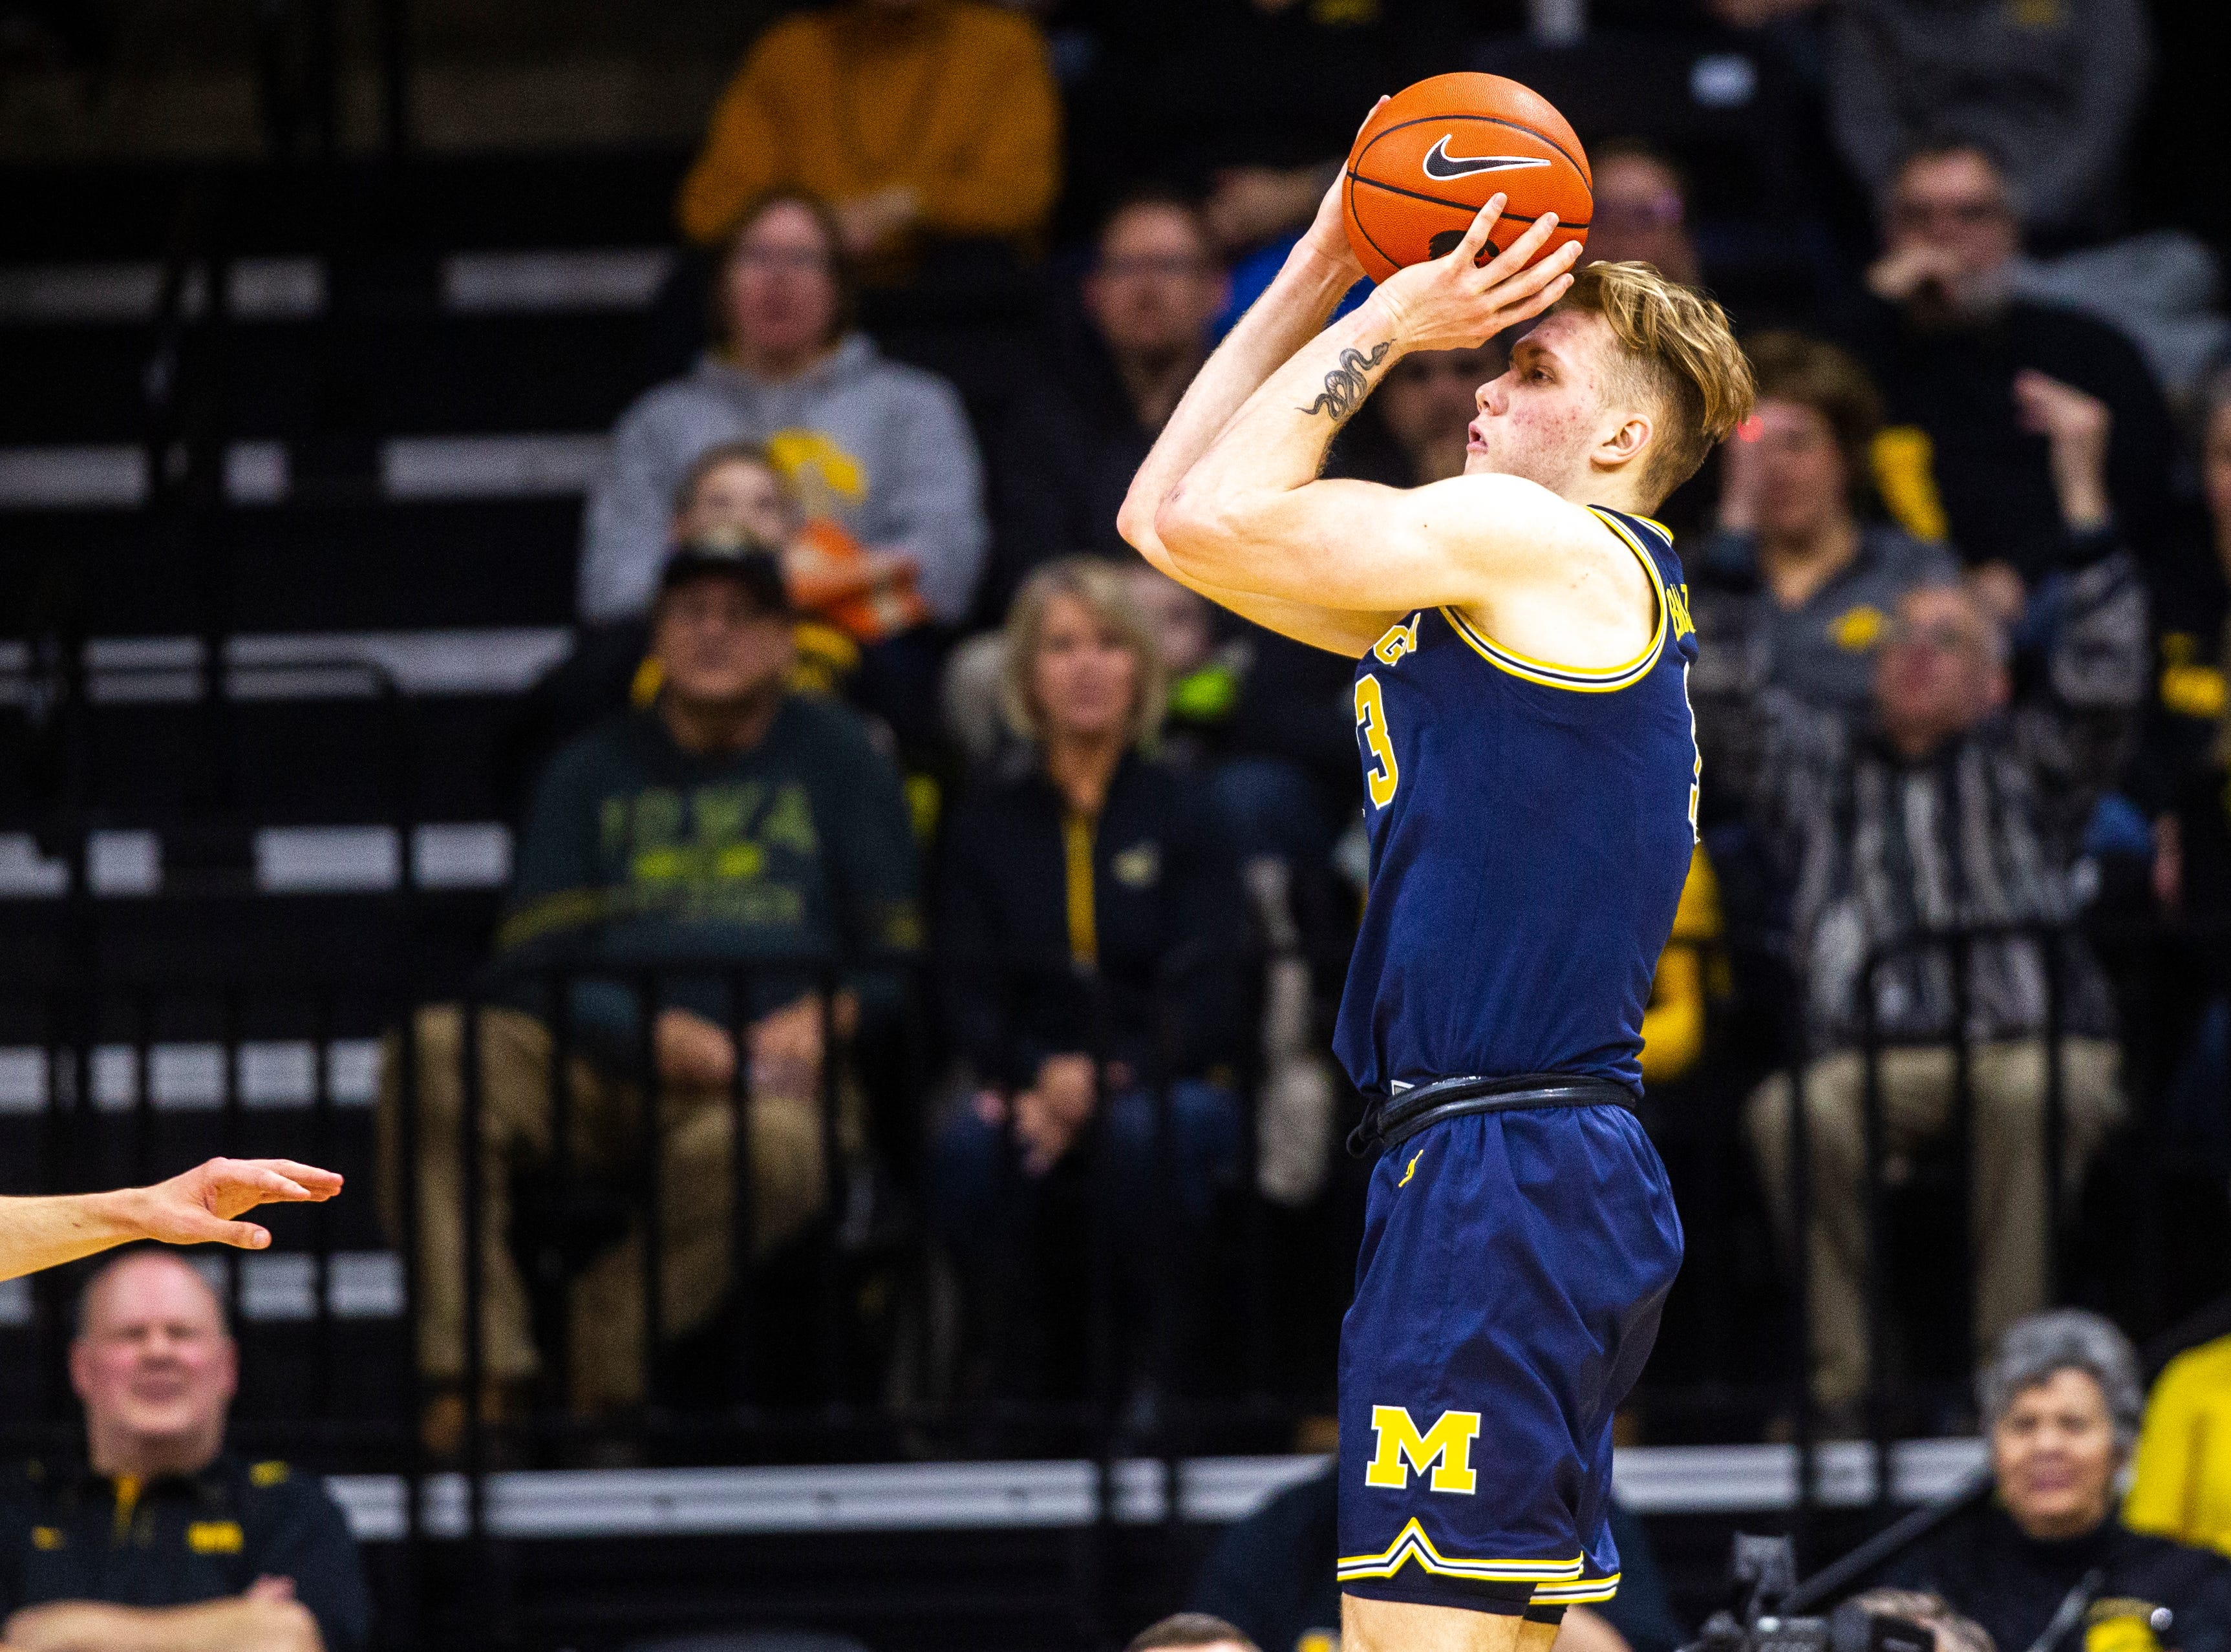 Michigan forward Ignas Brazdeikis (13) shoots a 3-point basket during a NCAA Big Ten Conference men's basketball game on Friday, Feb. 1, 2019, at Carver-Hawkeye Arena in Iowa City, Iowa.